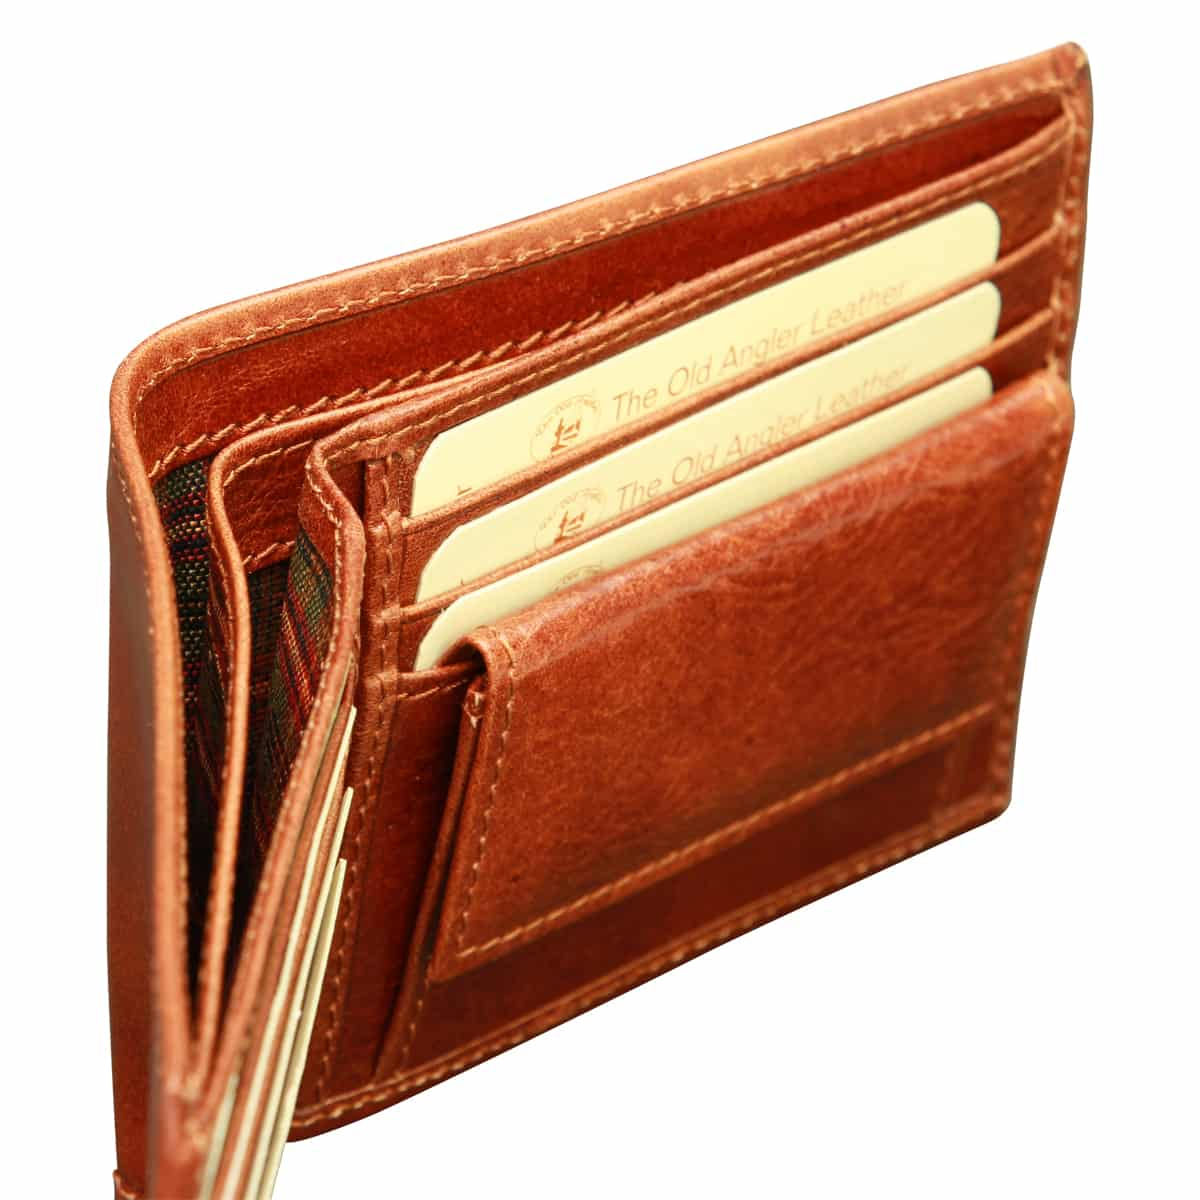 Cowhide leather wallet with coin pocket - Brown | 802305MA W | Old Angler Firenze